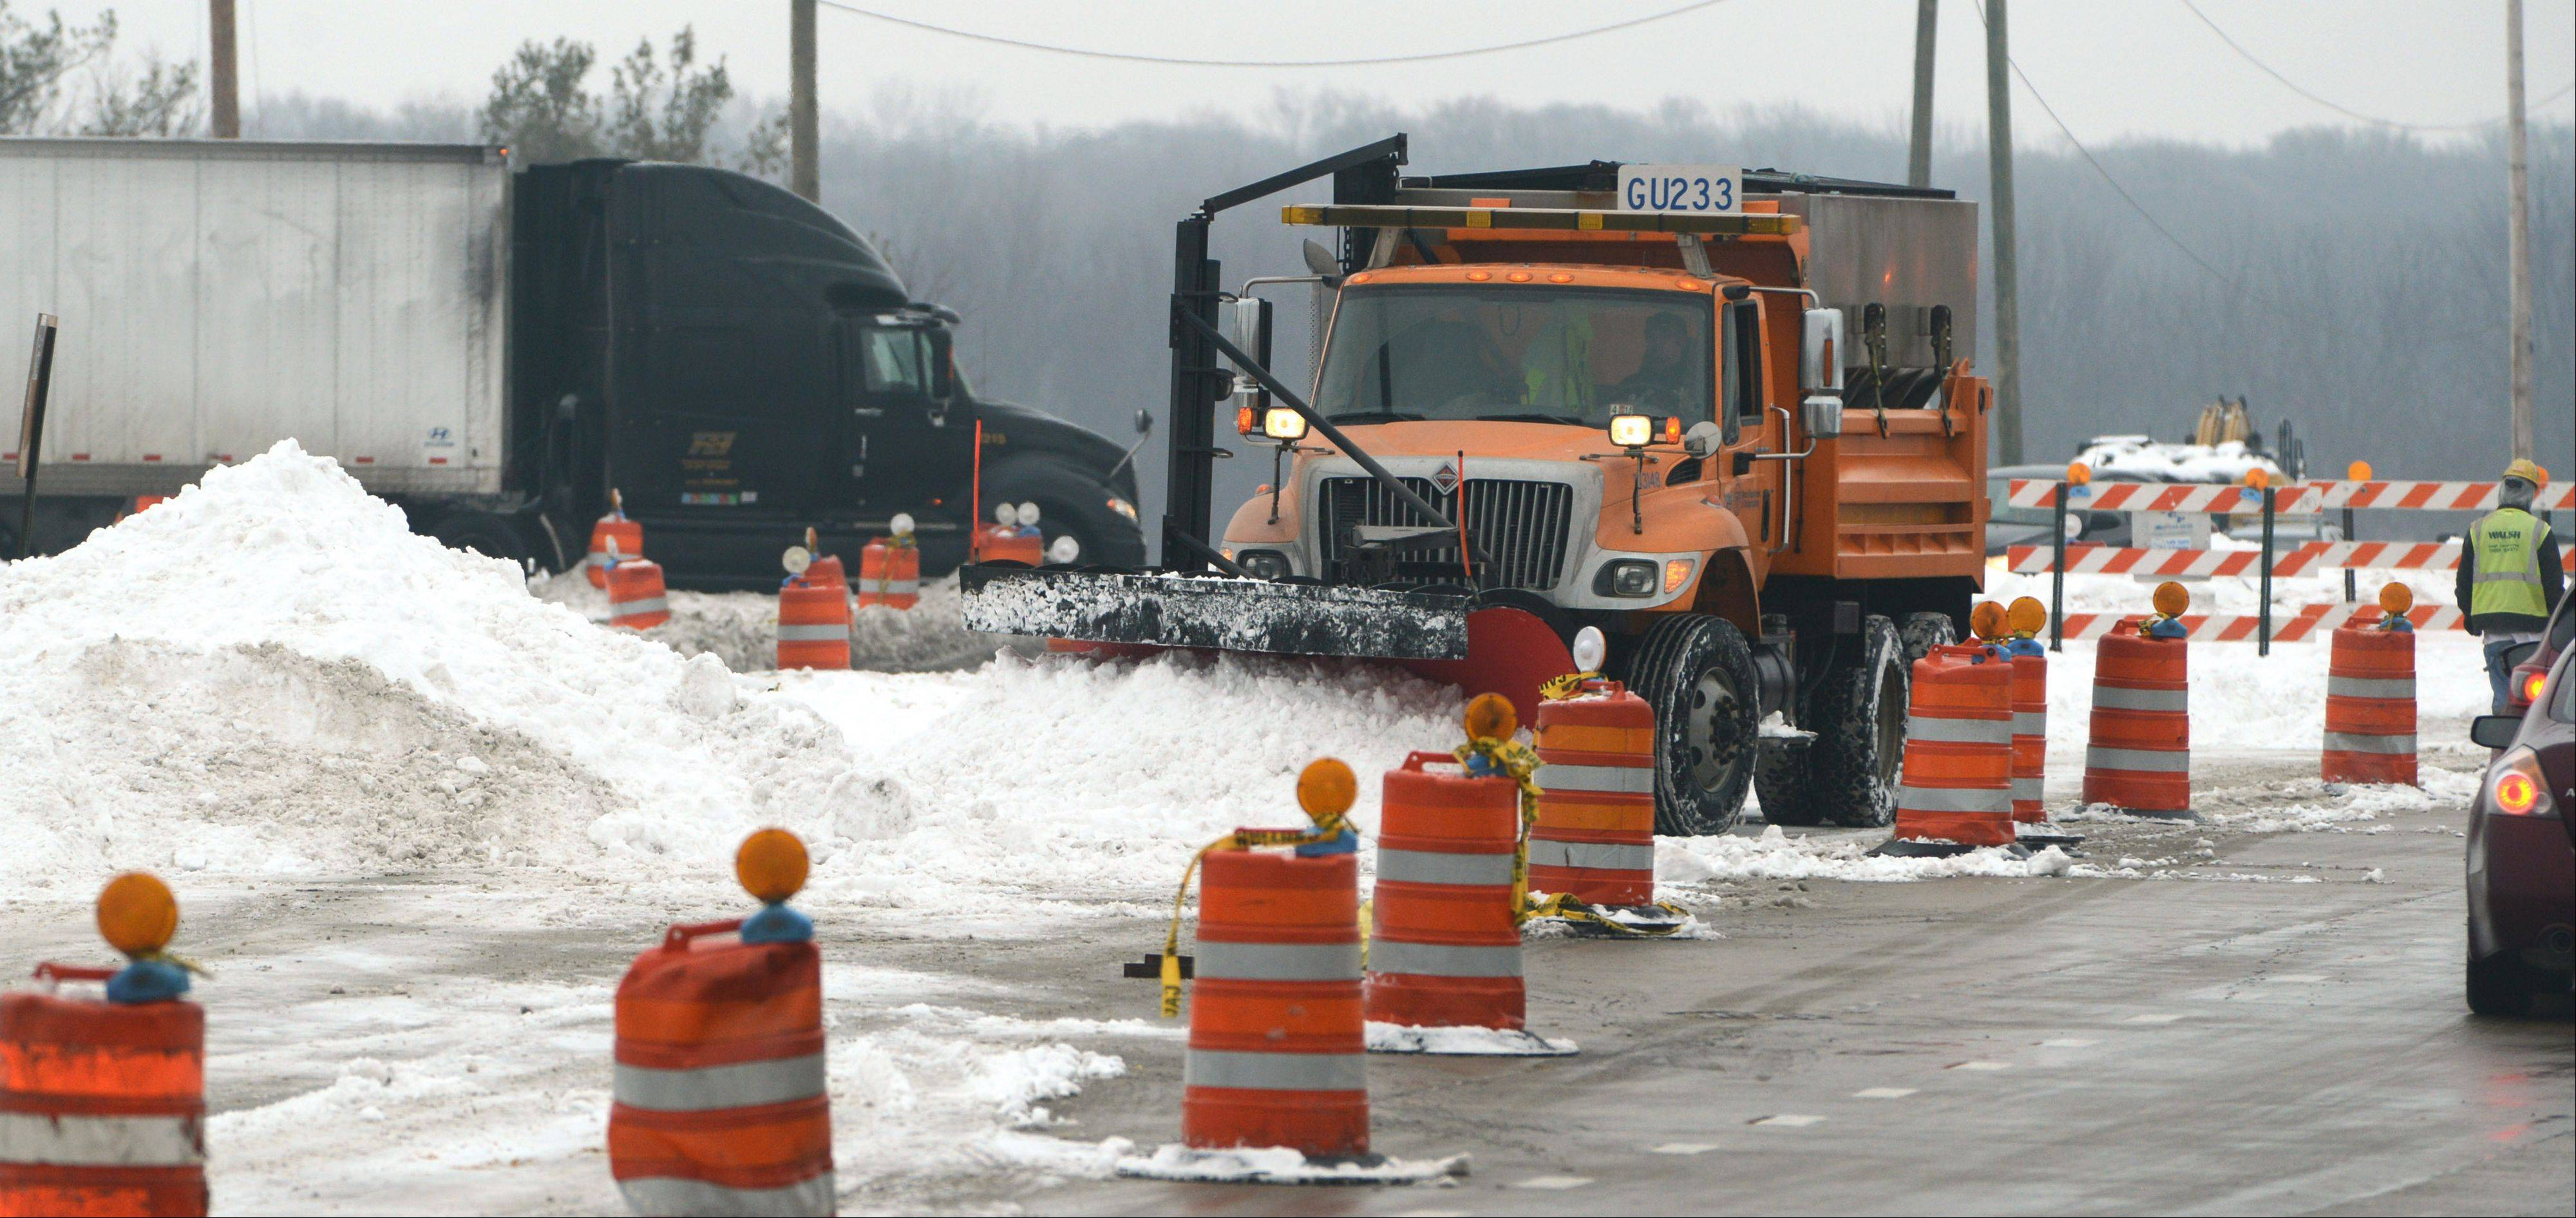 Traffic relief at Libertyville intersection depends on weather